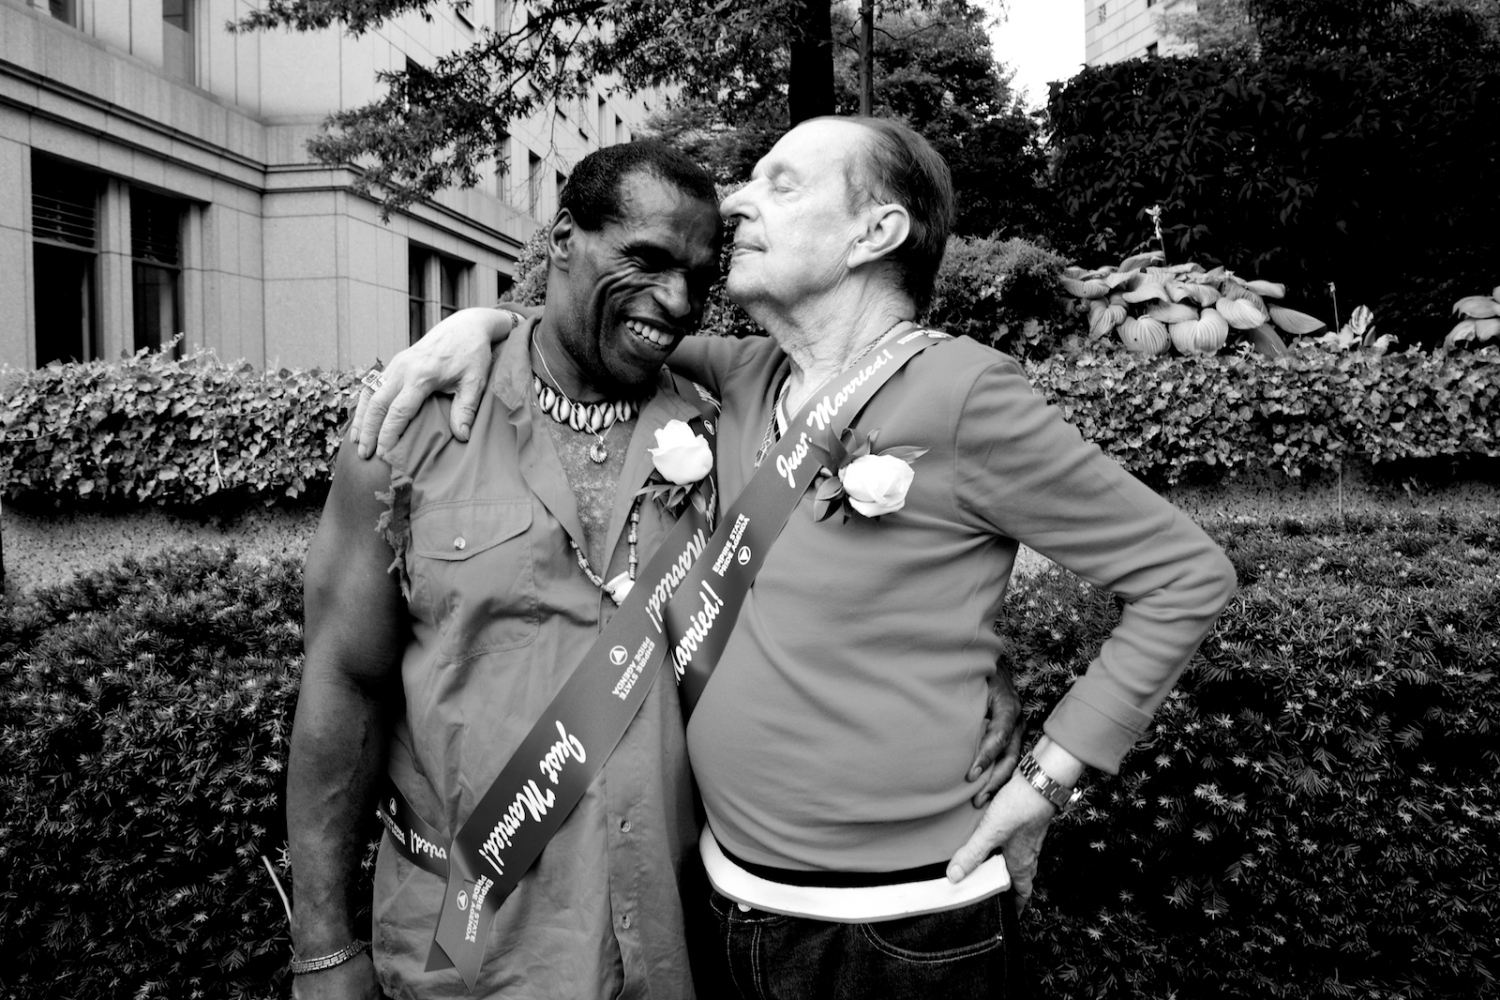 Michael J., 55 and Michael R., 81, embrace after getting married at the City Clerk's office, on the first day New York State's Marriage Equality Act goes into effect. They have been together 30 years. New York, NY, July 24, 2011